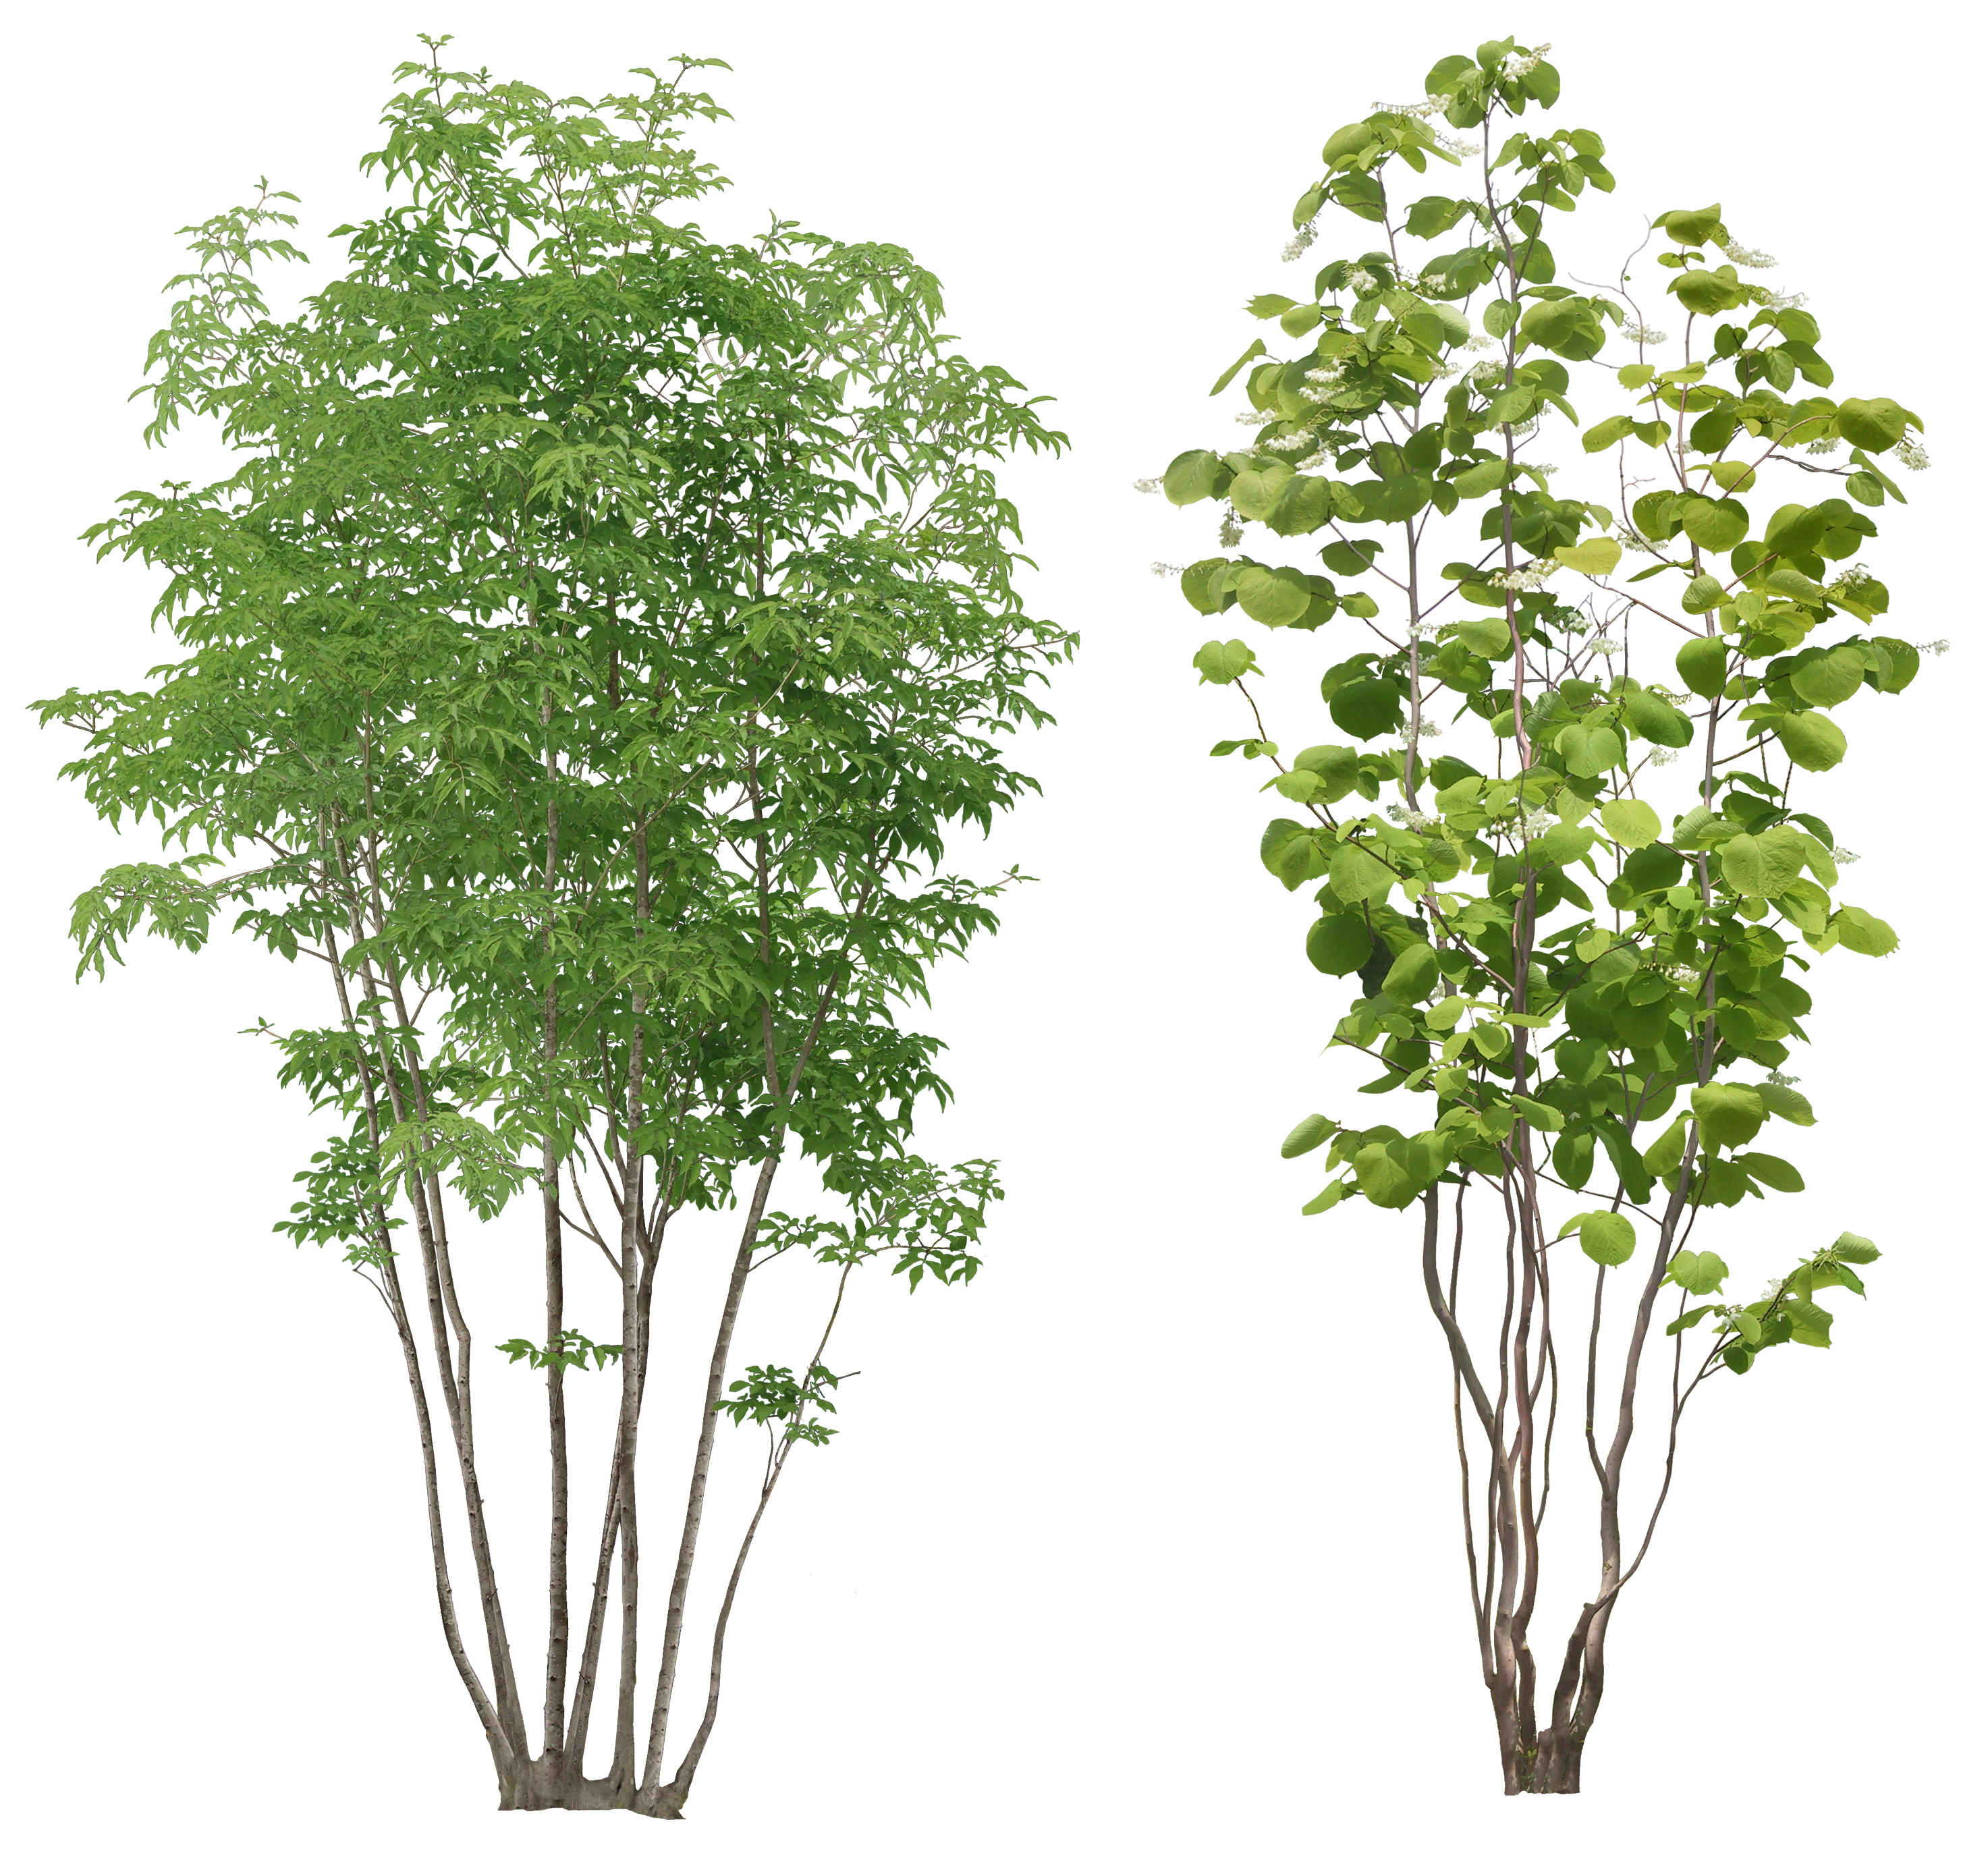 Birch tree png. Image planten plant boom